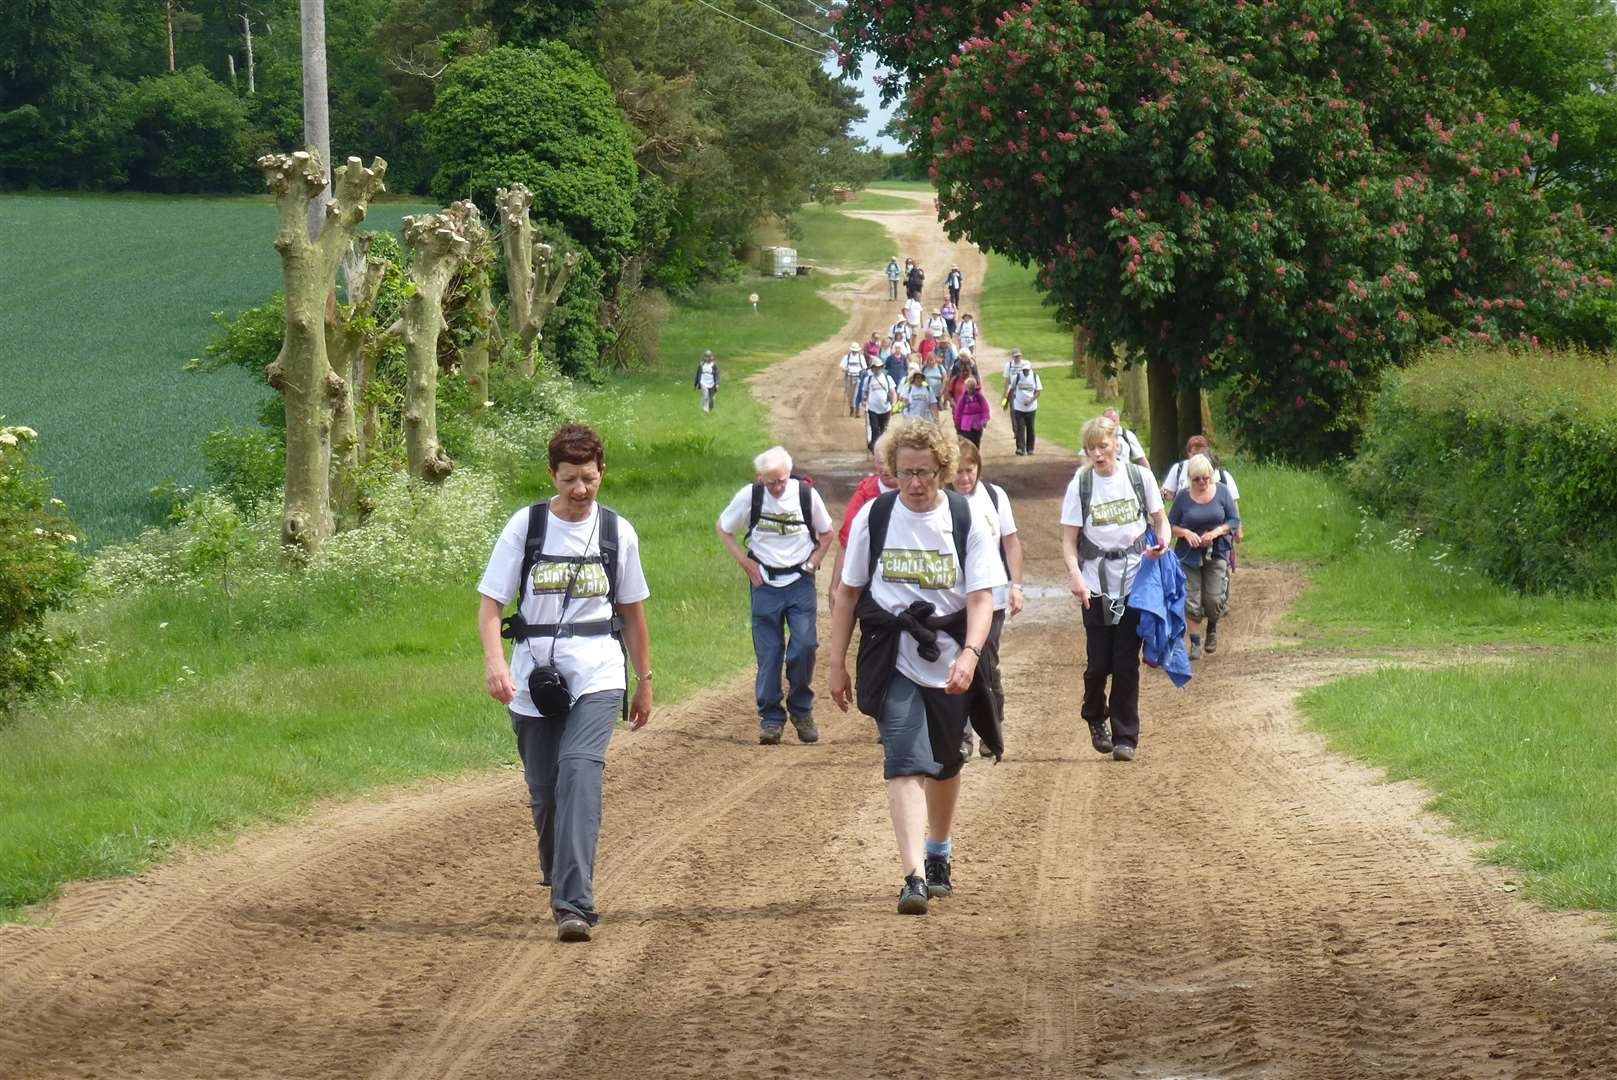 suffolk walking festiva - previous event (9026604)